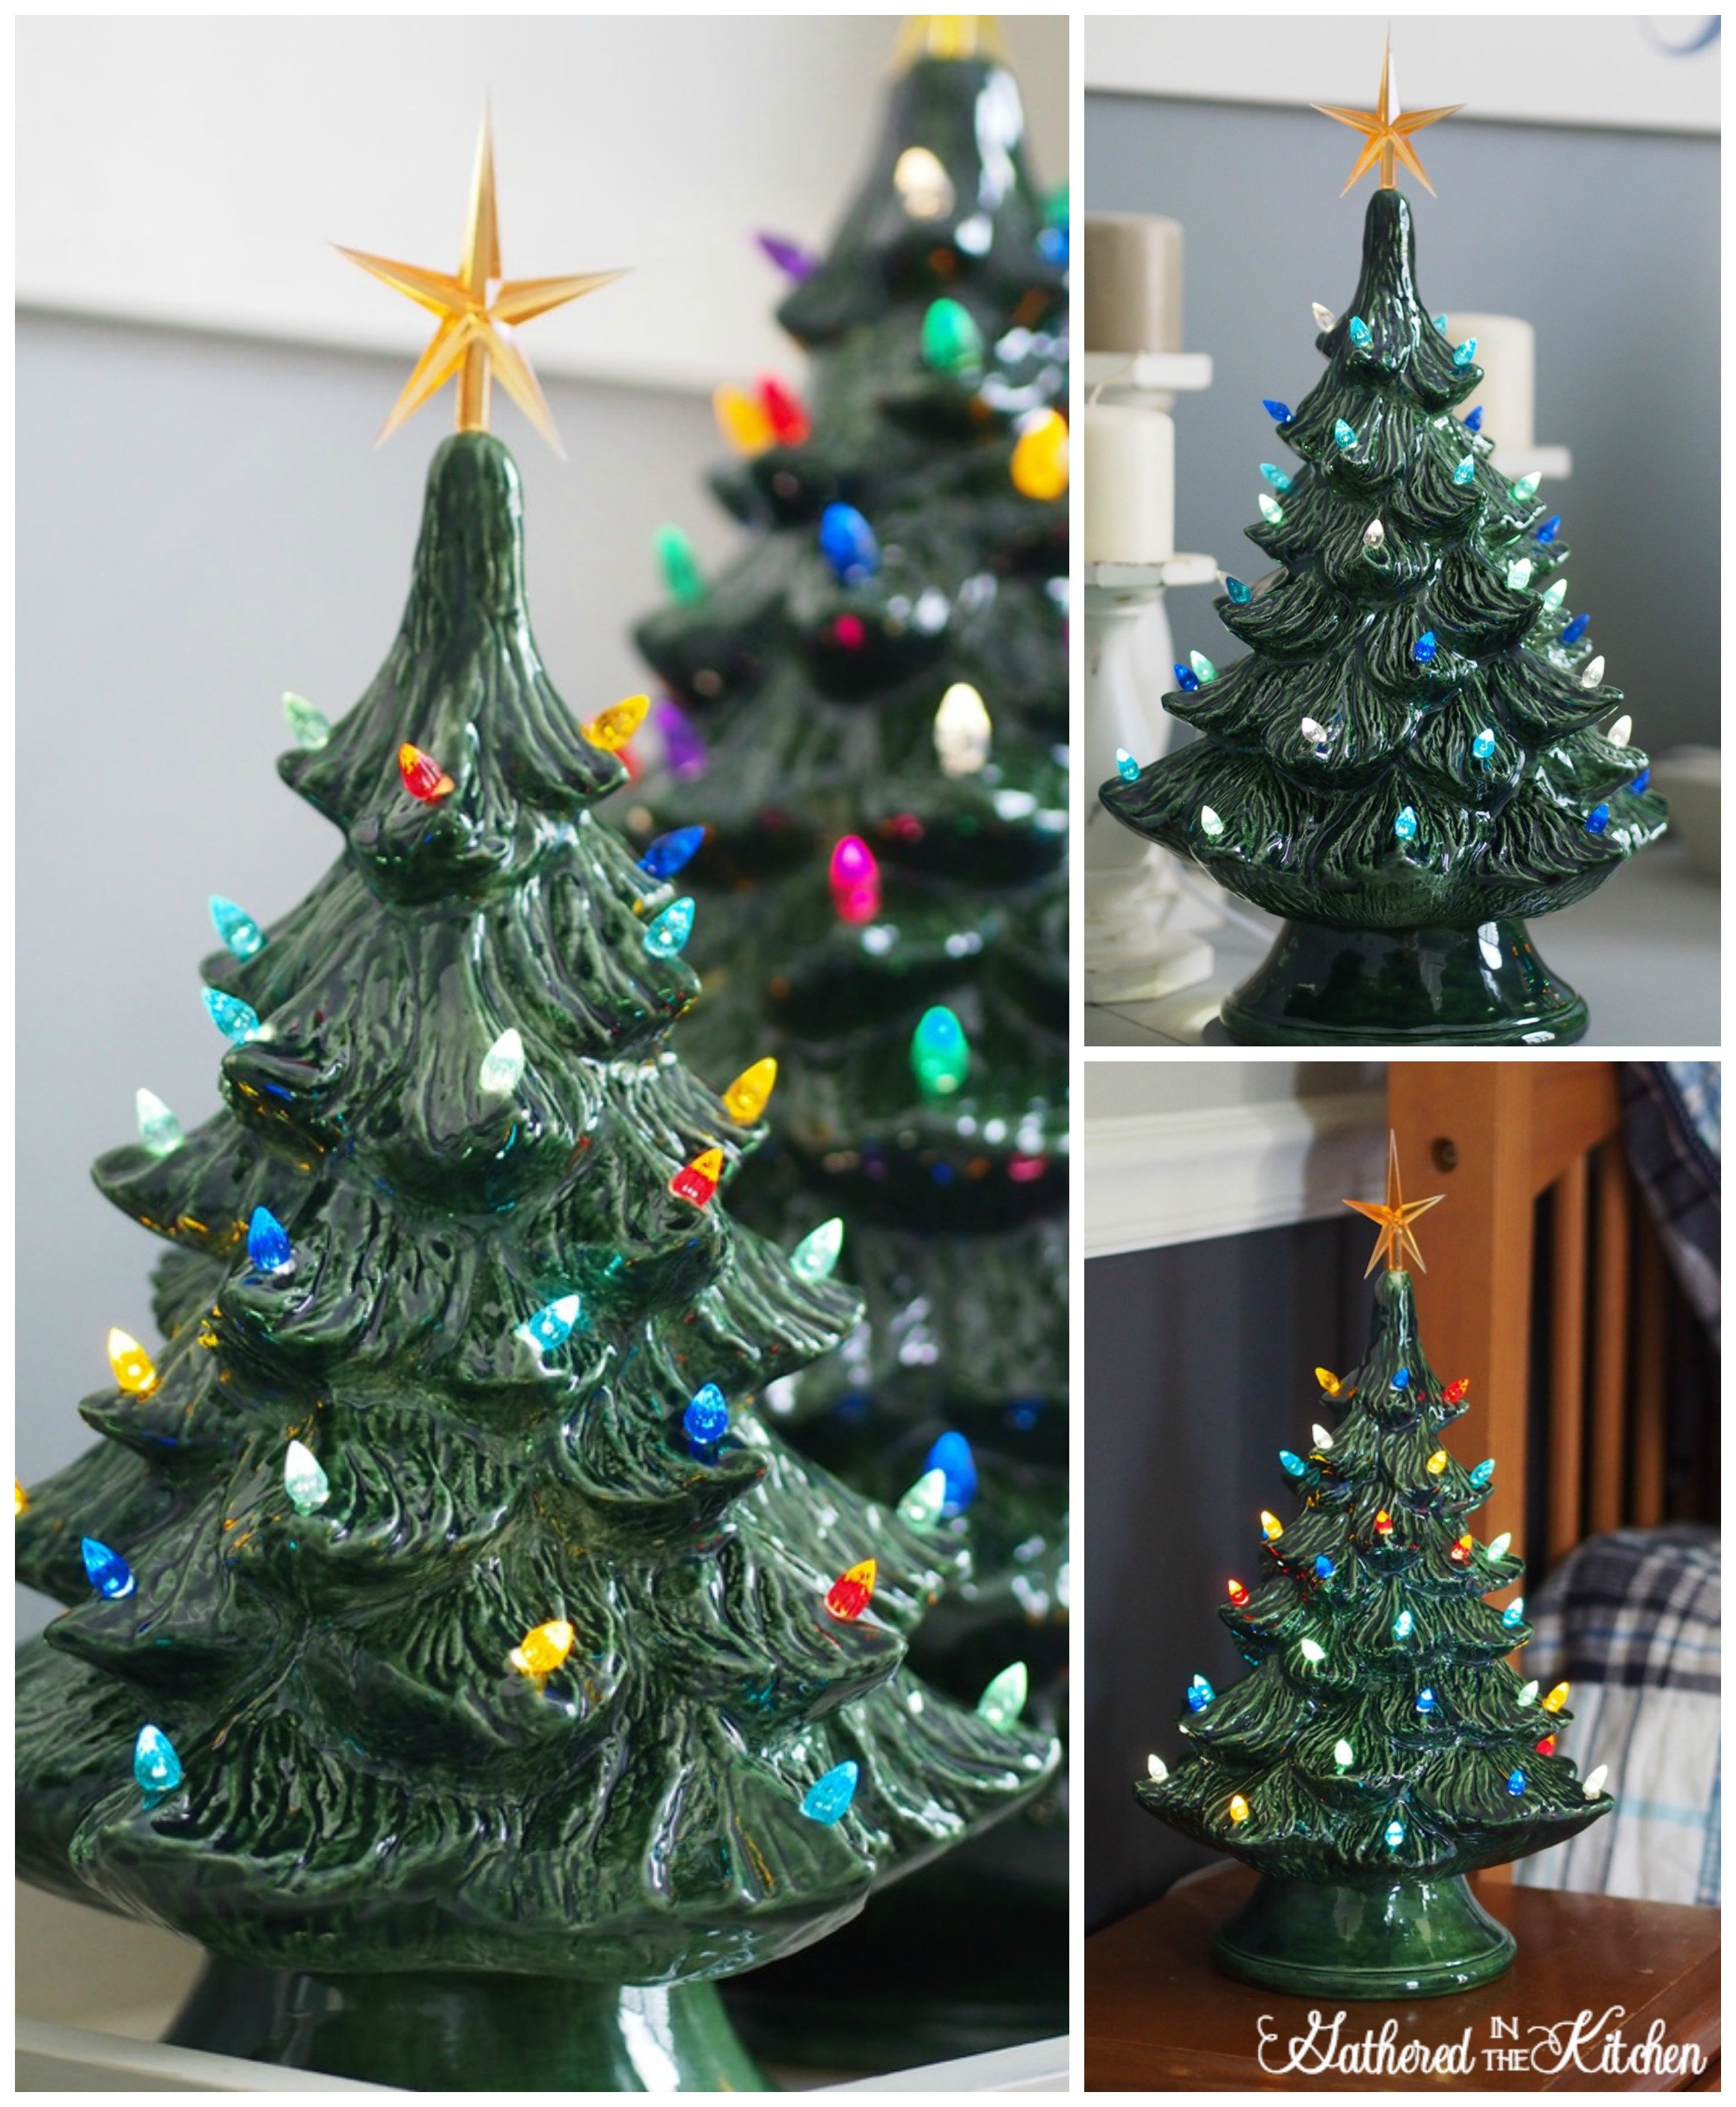 Where Does Christmas Trees Come From: Paint Your Own Ceramic Christmas Tree With Light Kit